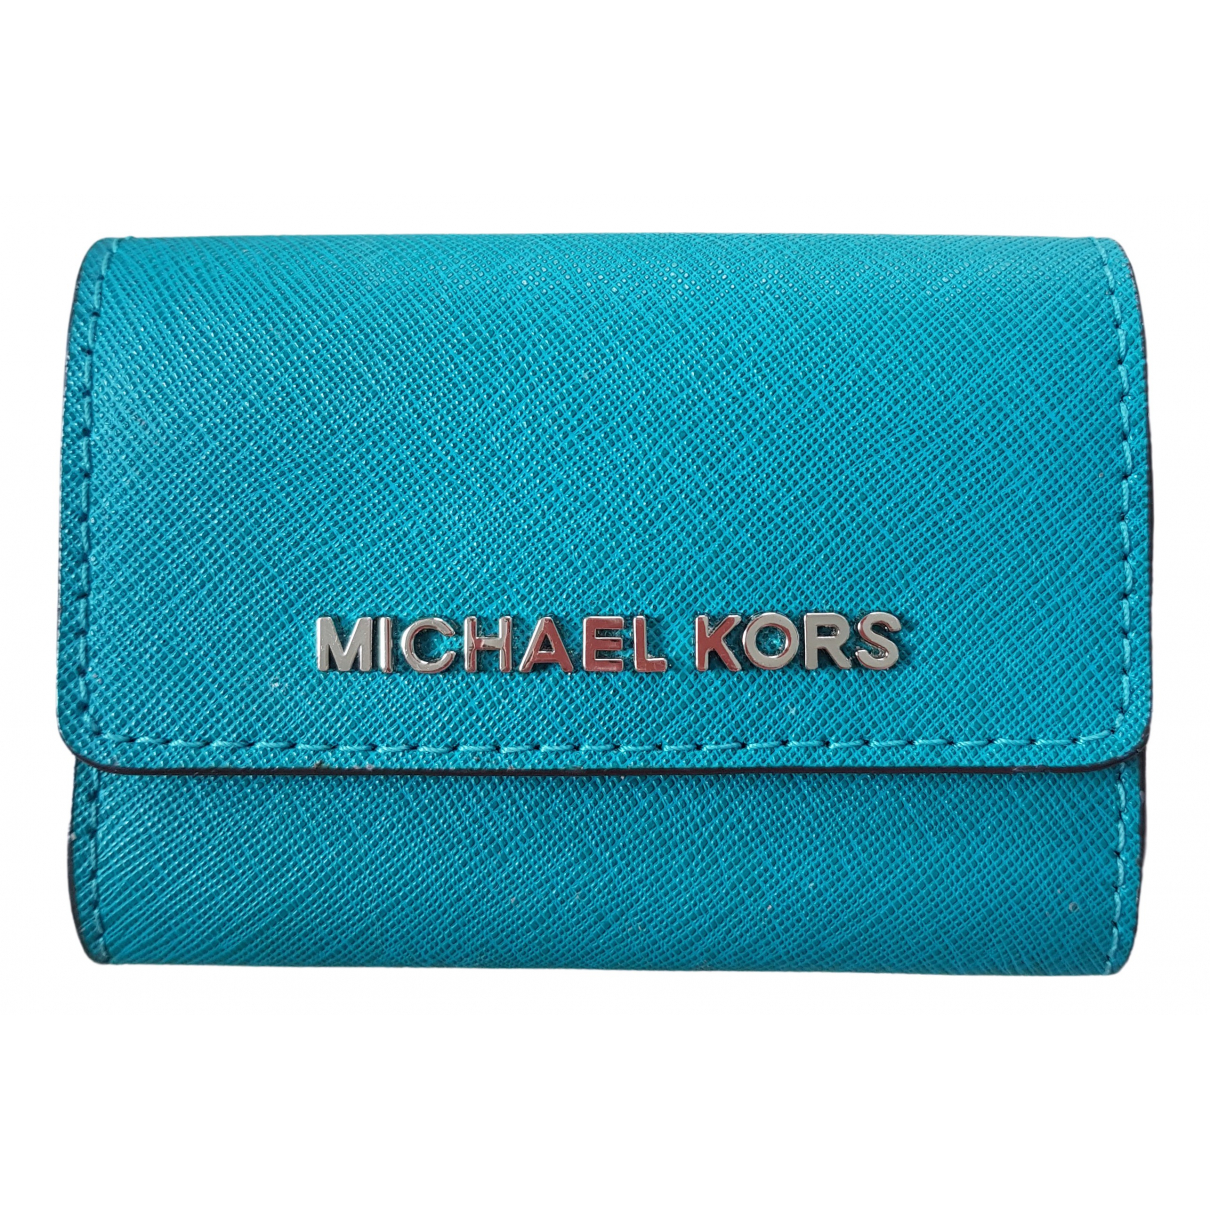 Michael Kors N Turquoise Leather Purses, wallet & cases for Women N